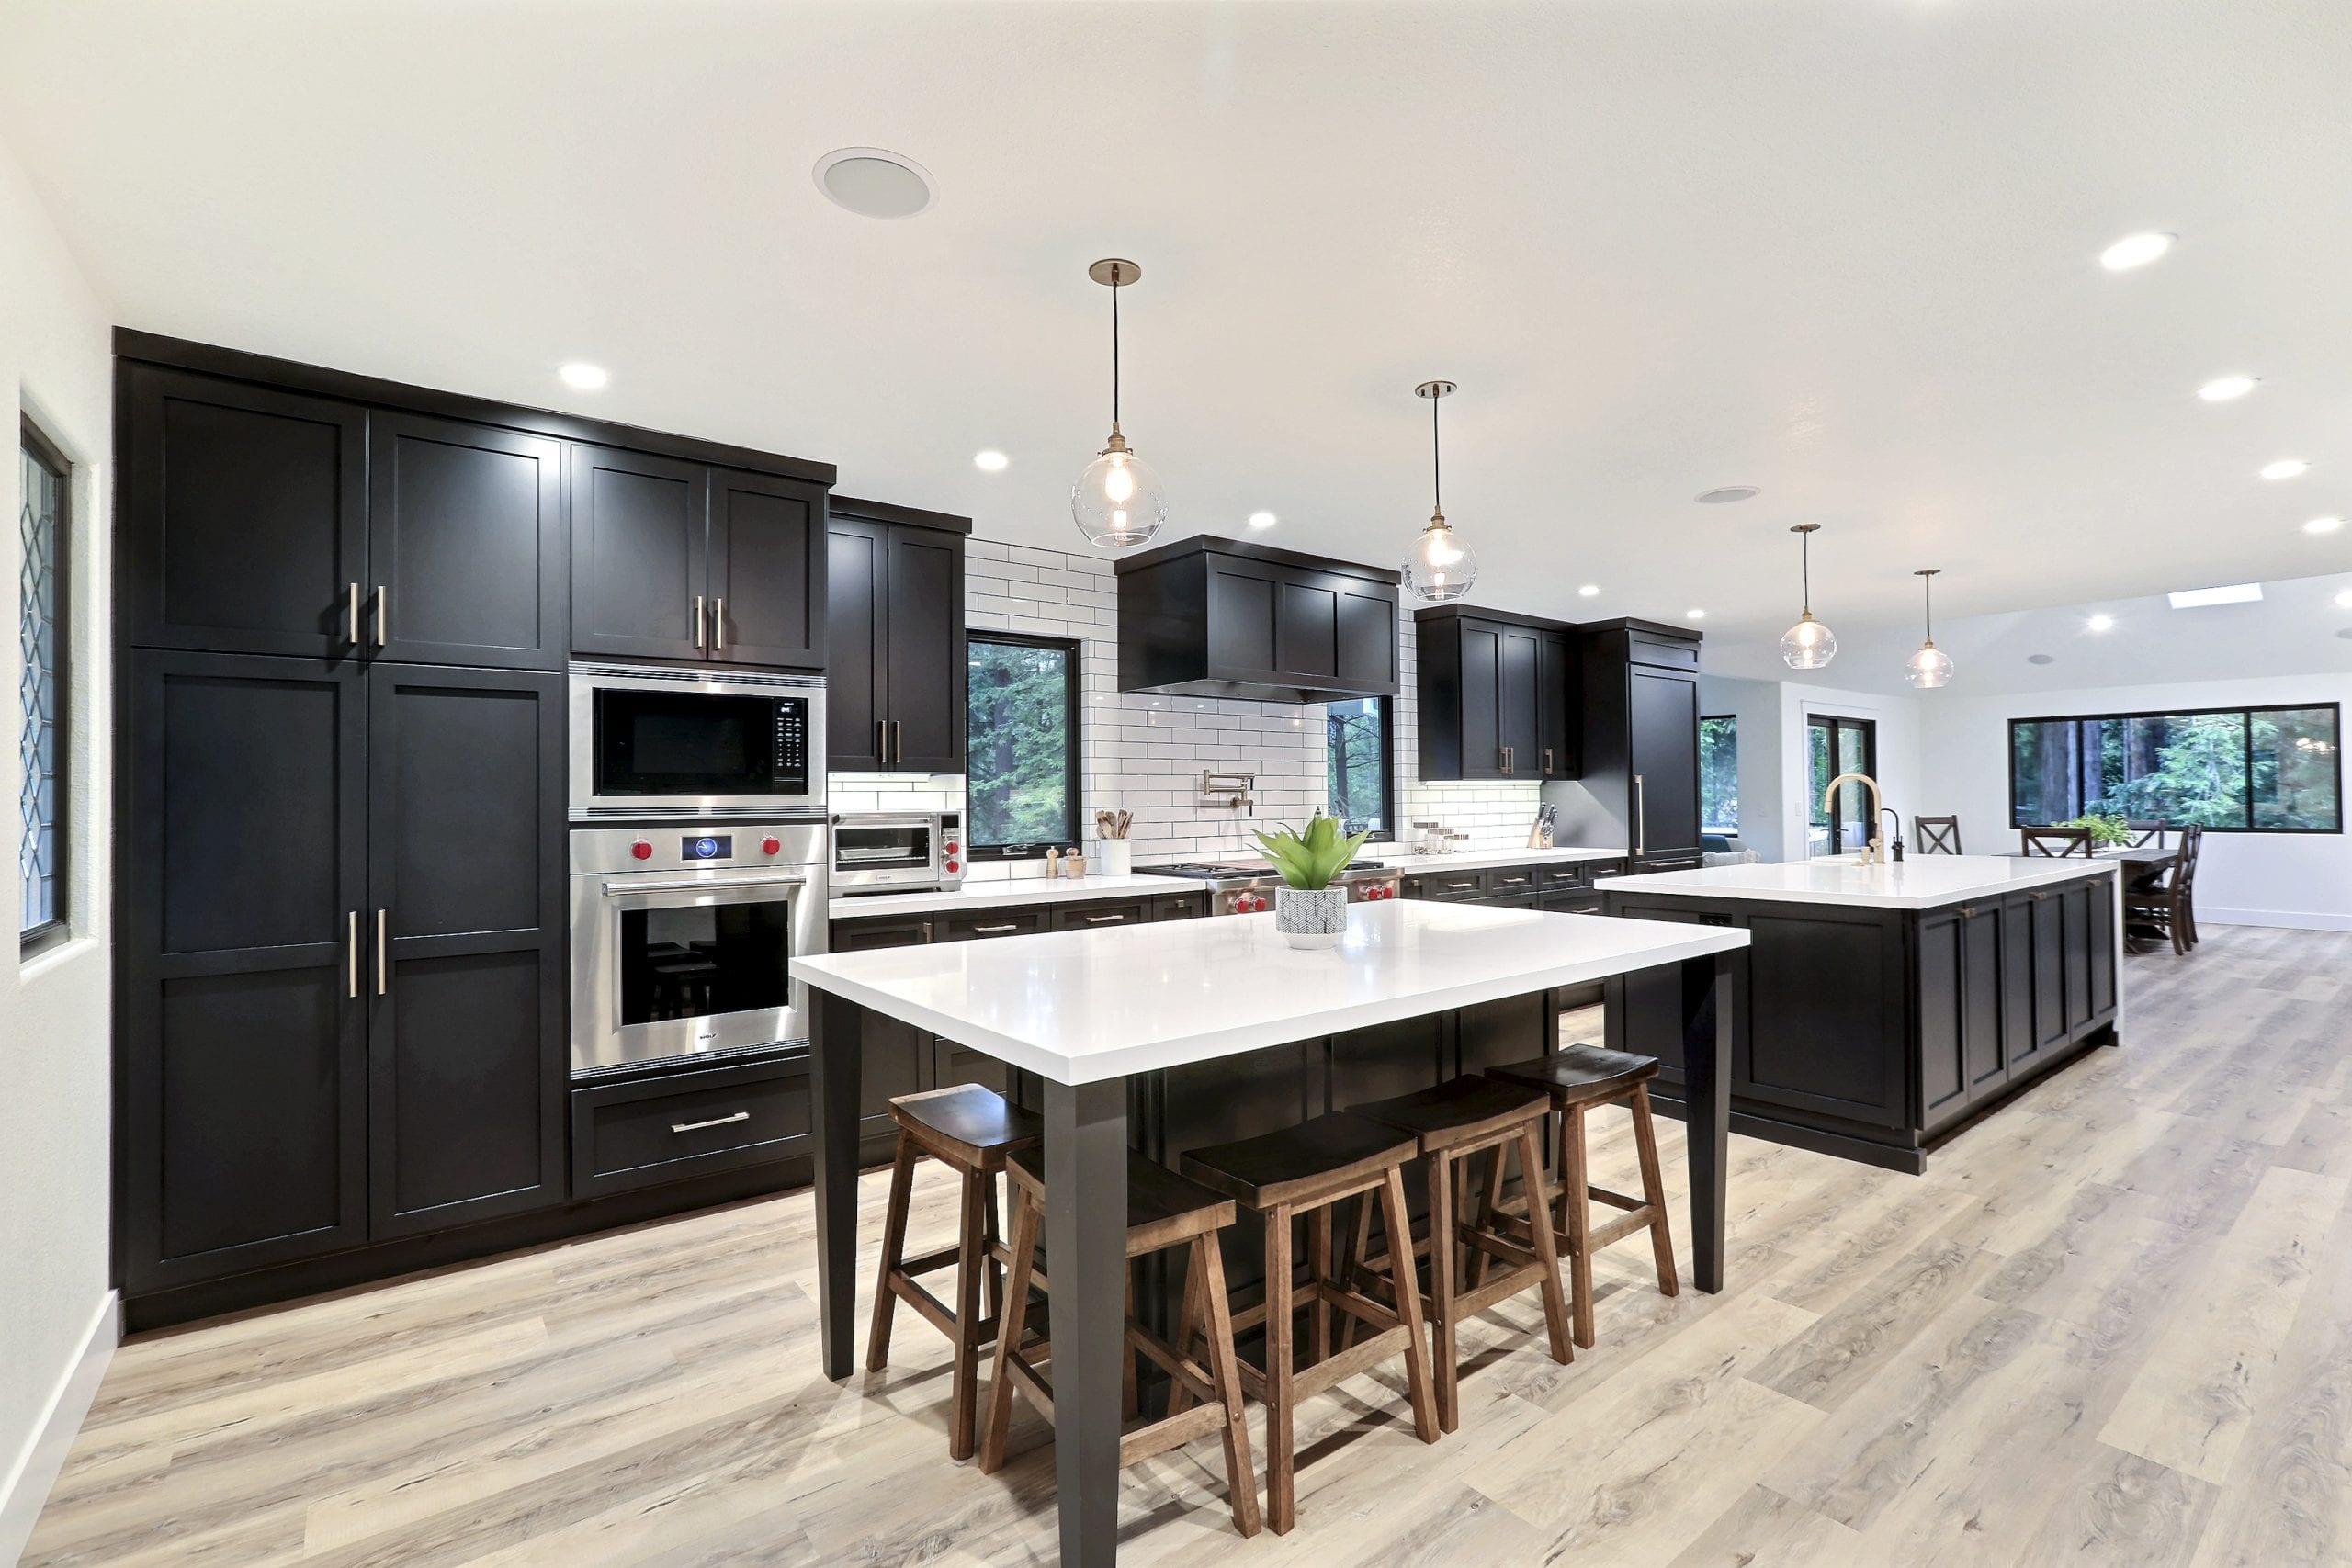 Black cabinets accent a light stained wood floor with white marble countertops